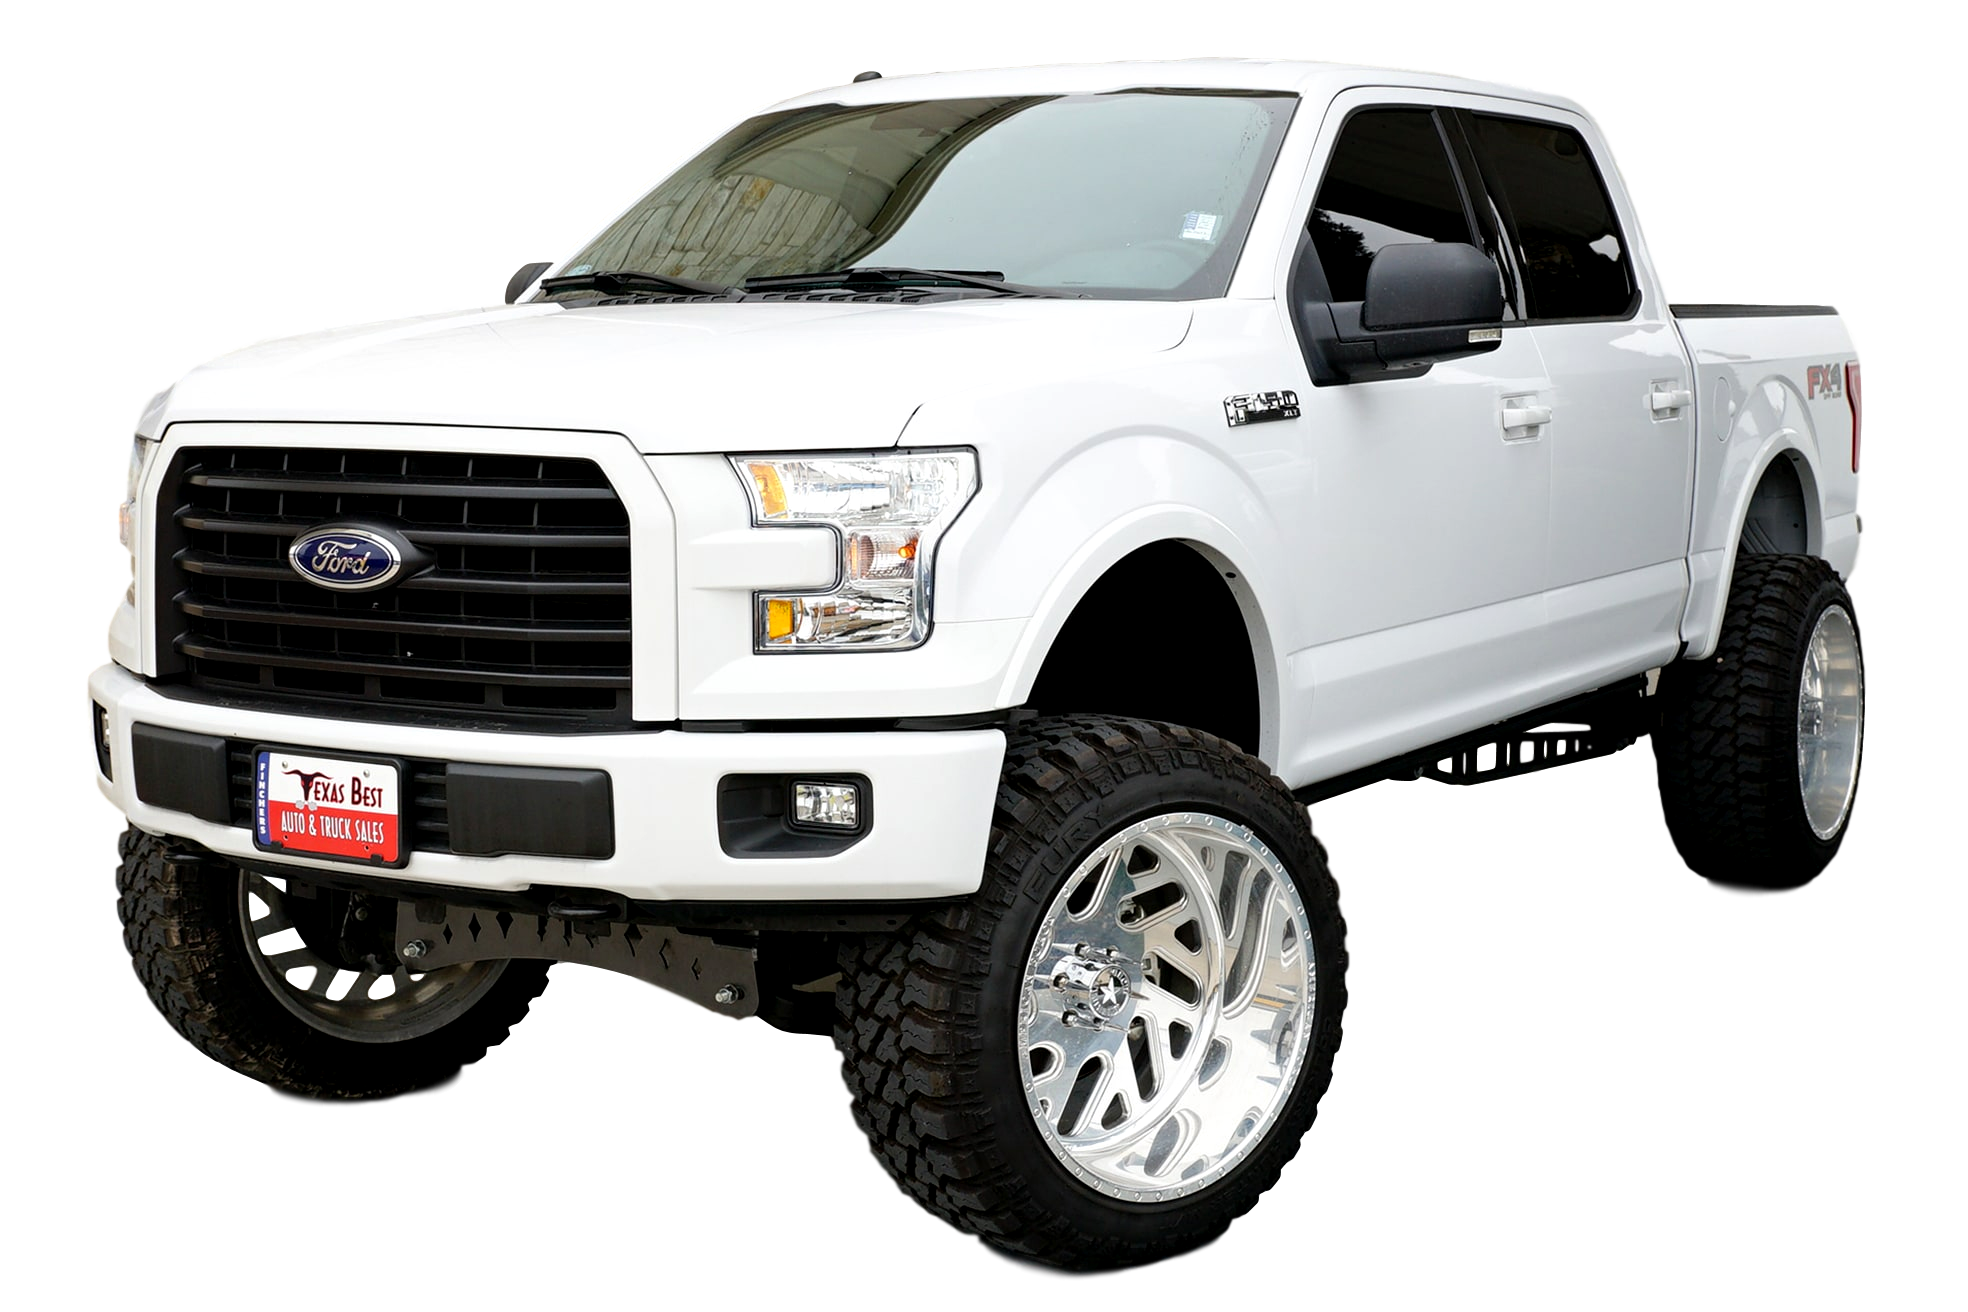 2016 Toyota Tacoma For Sale >> Fincher's Texas Best Auto & Truck Sales | Lifted Trucks in Houston, TX, Tomball, TX